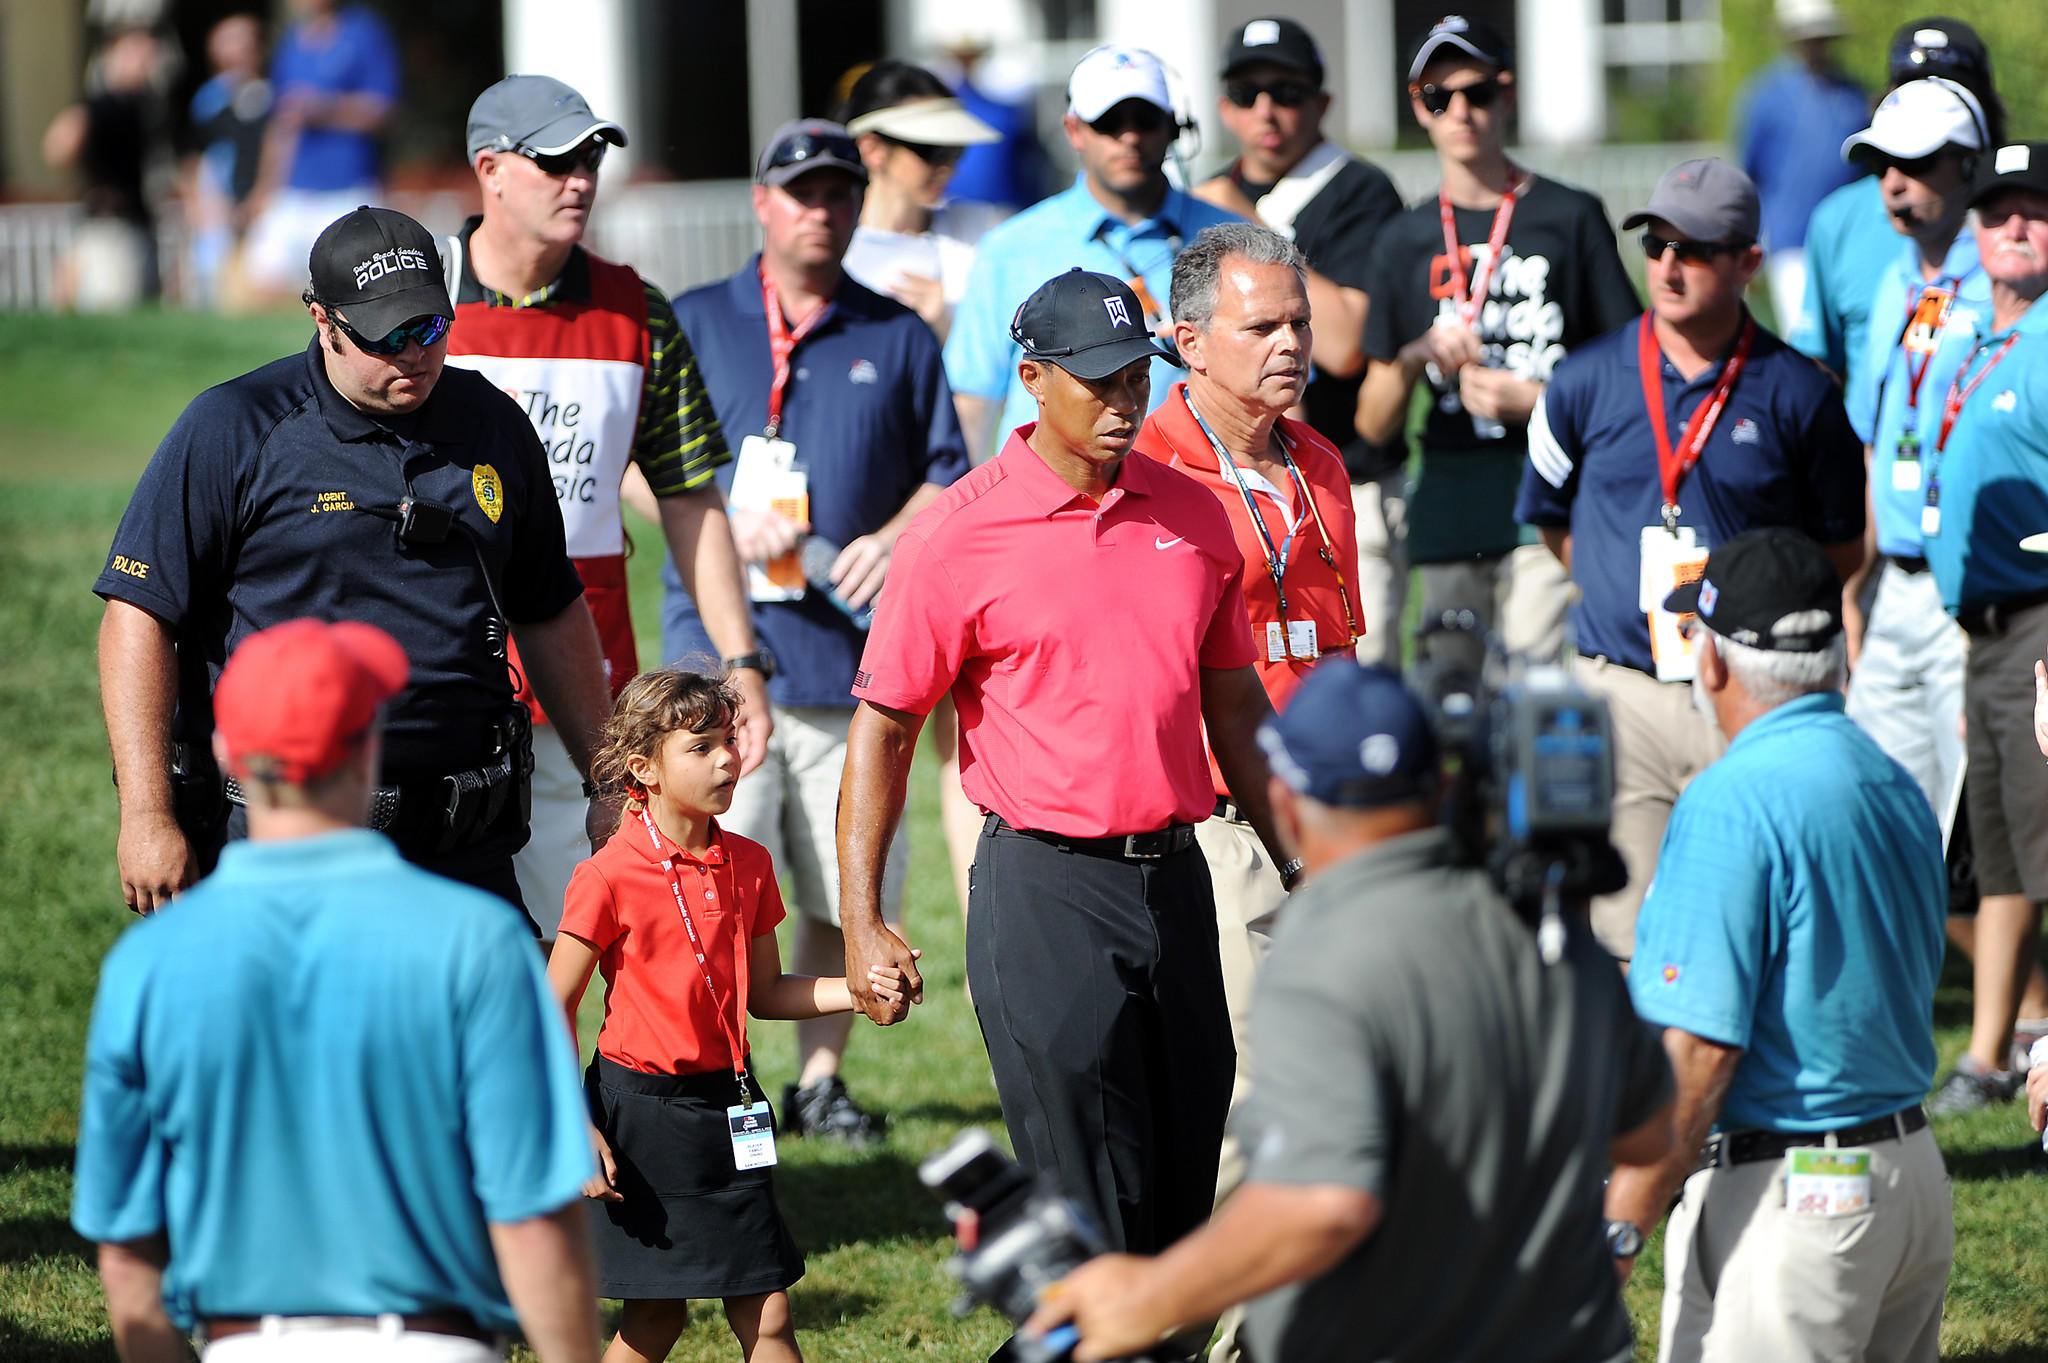 Tiger Woods walks off the 13th green Sunday afternoon at The Honda Classic in Palm Beach Gardens. He withdrew from the tournament after complaining of back pain.